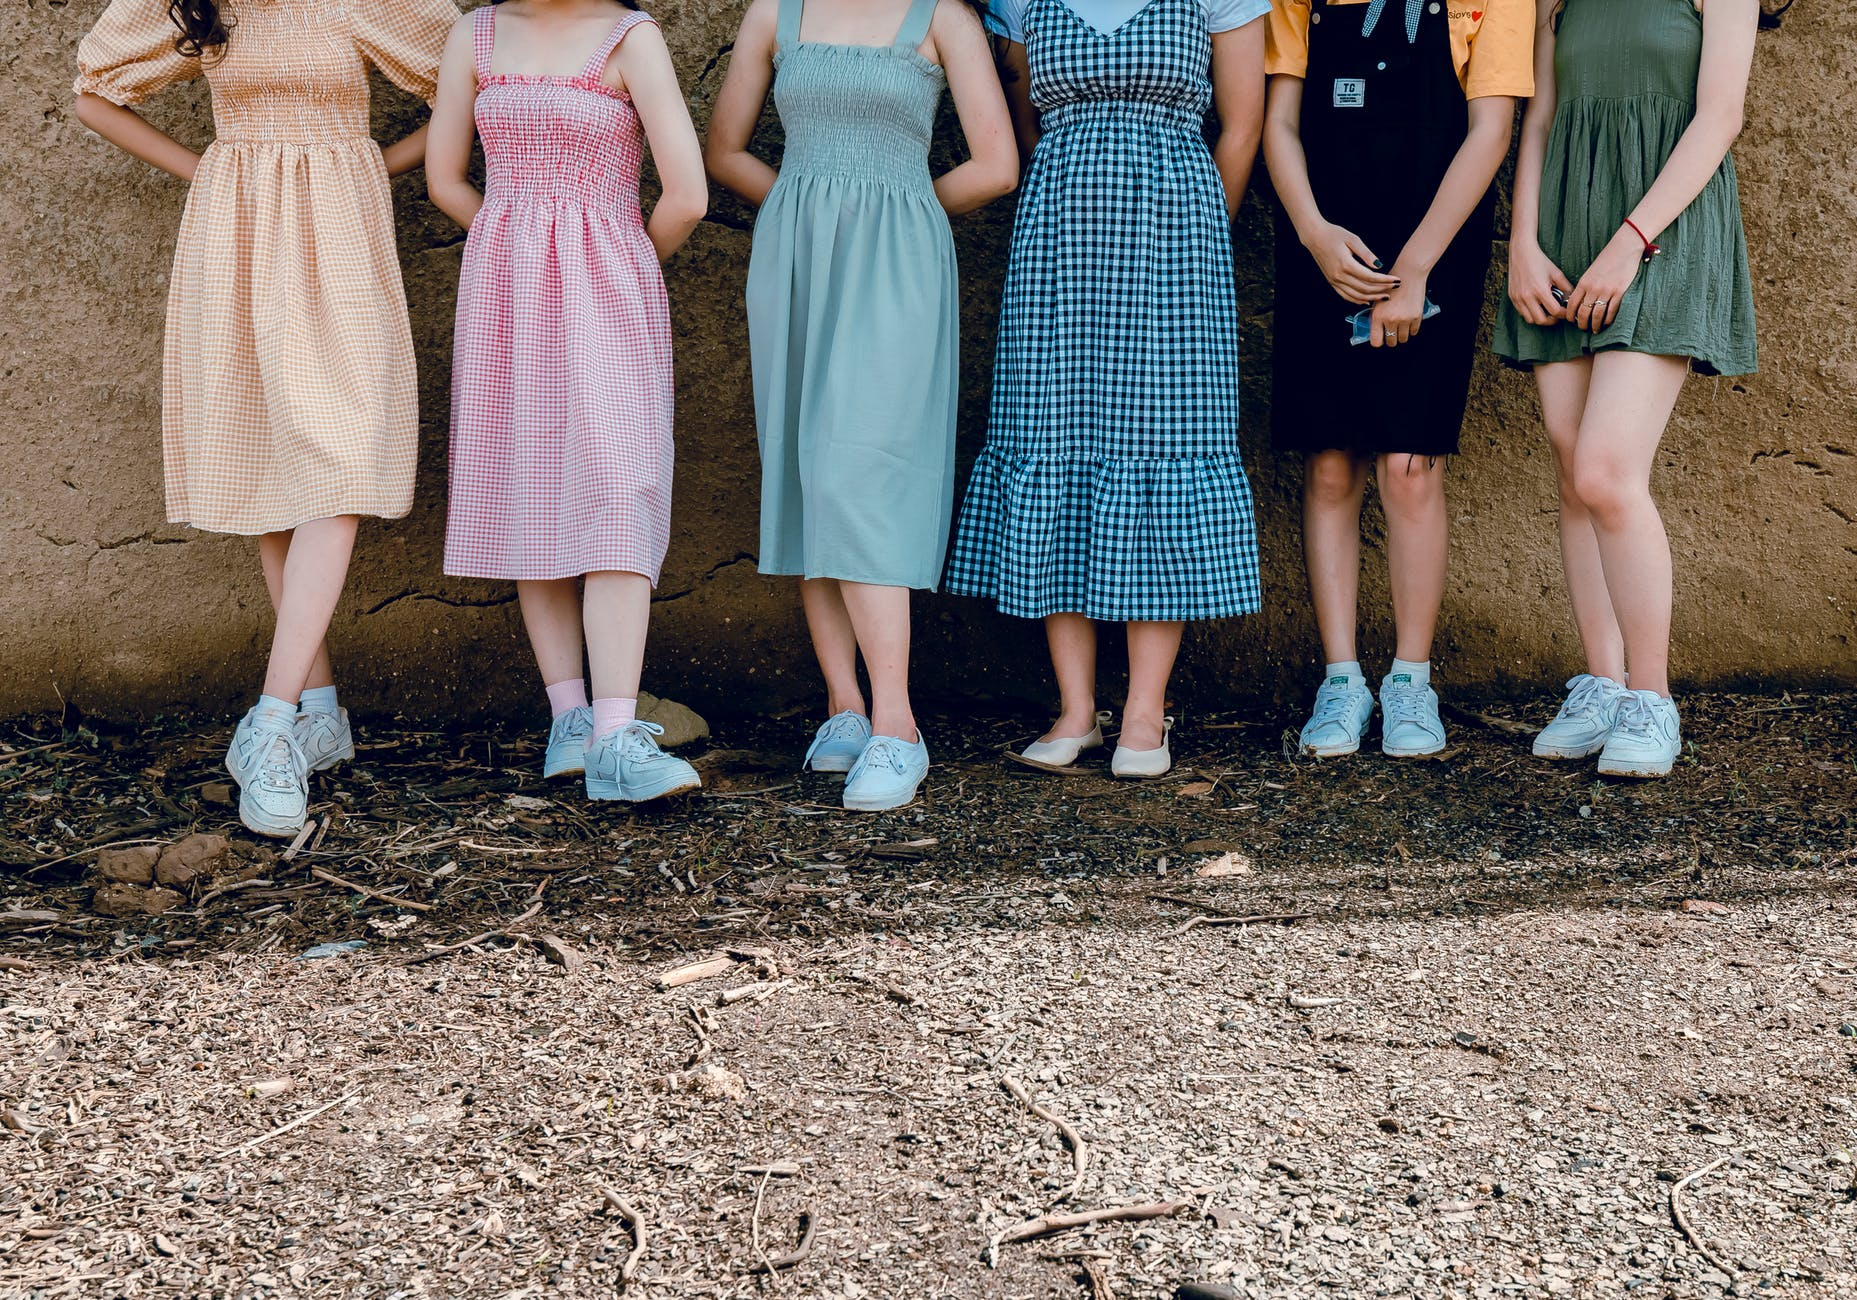 a group of girls posing